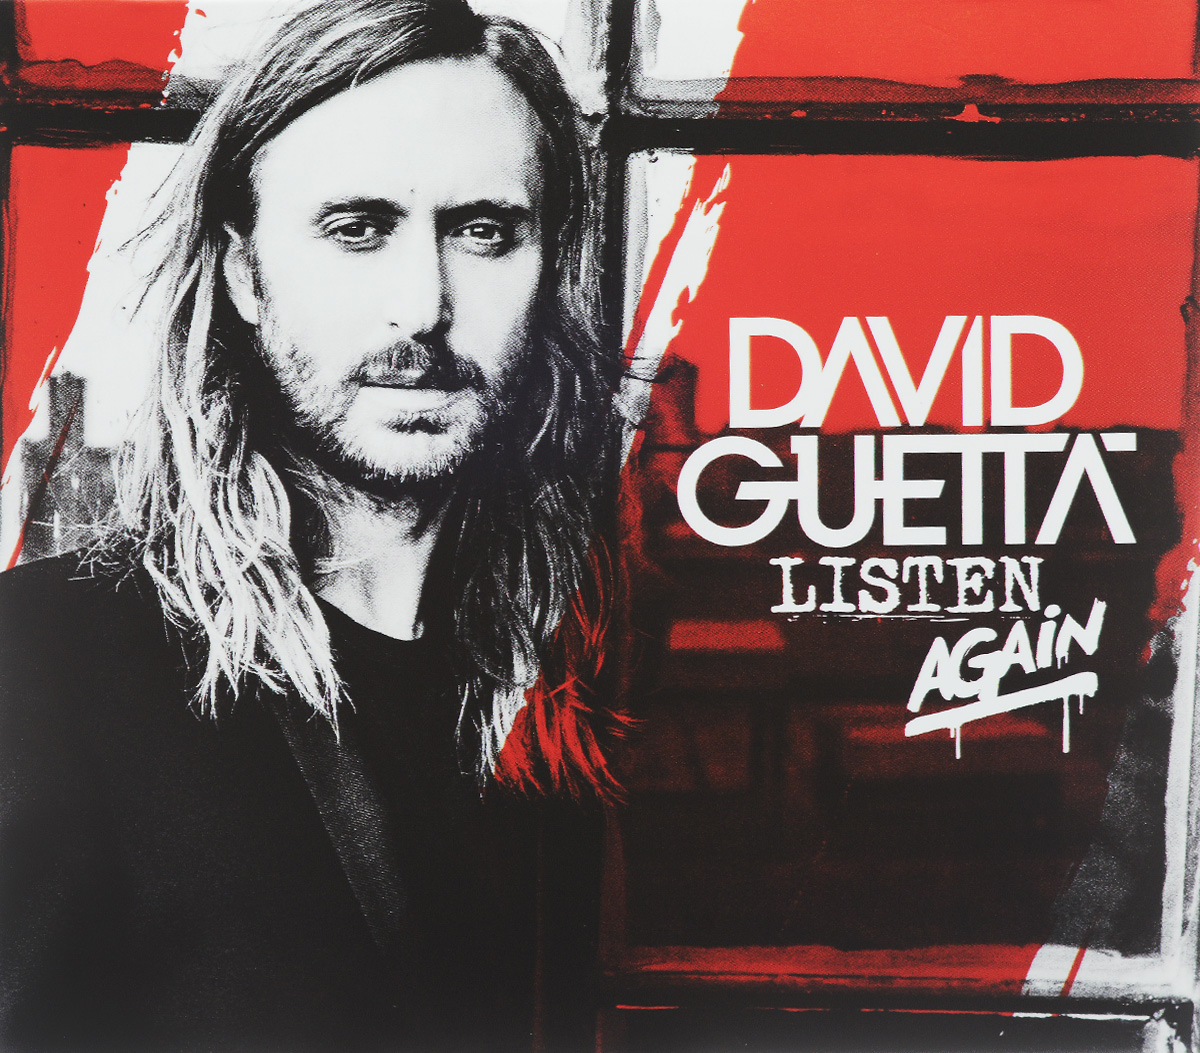 Дэвид Гетта David Guetta. Listen Again. Limited Deluxe Edition (2 CD) дэвид гетта david guetta original album series 5 cd